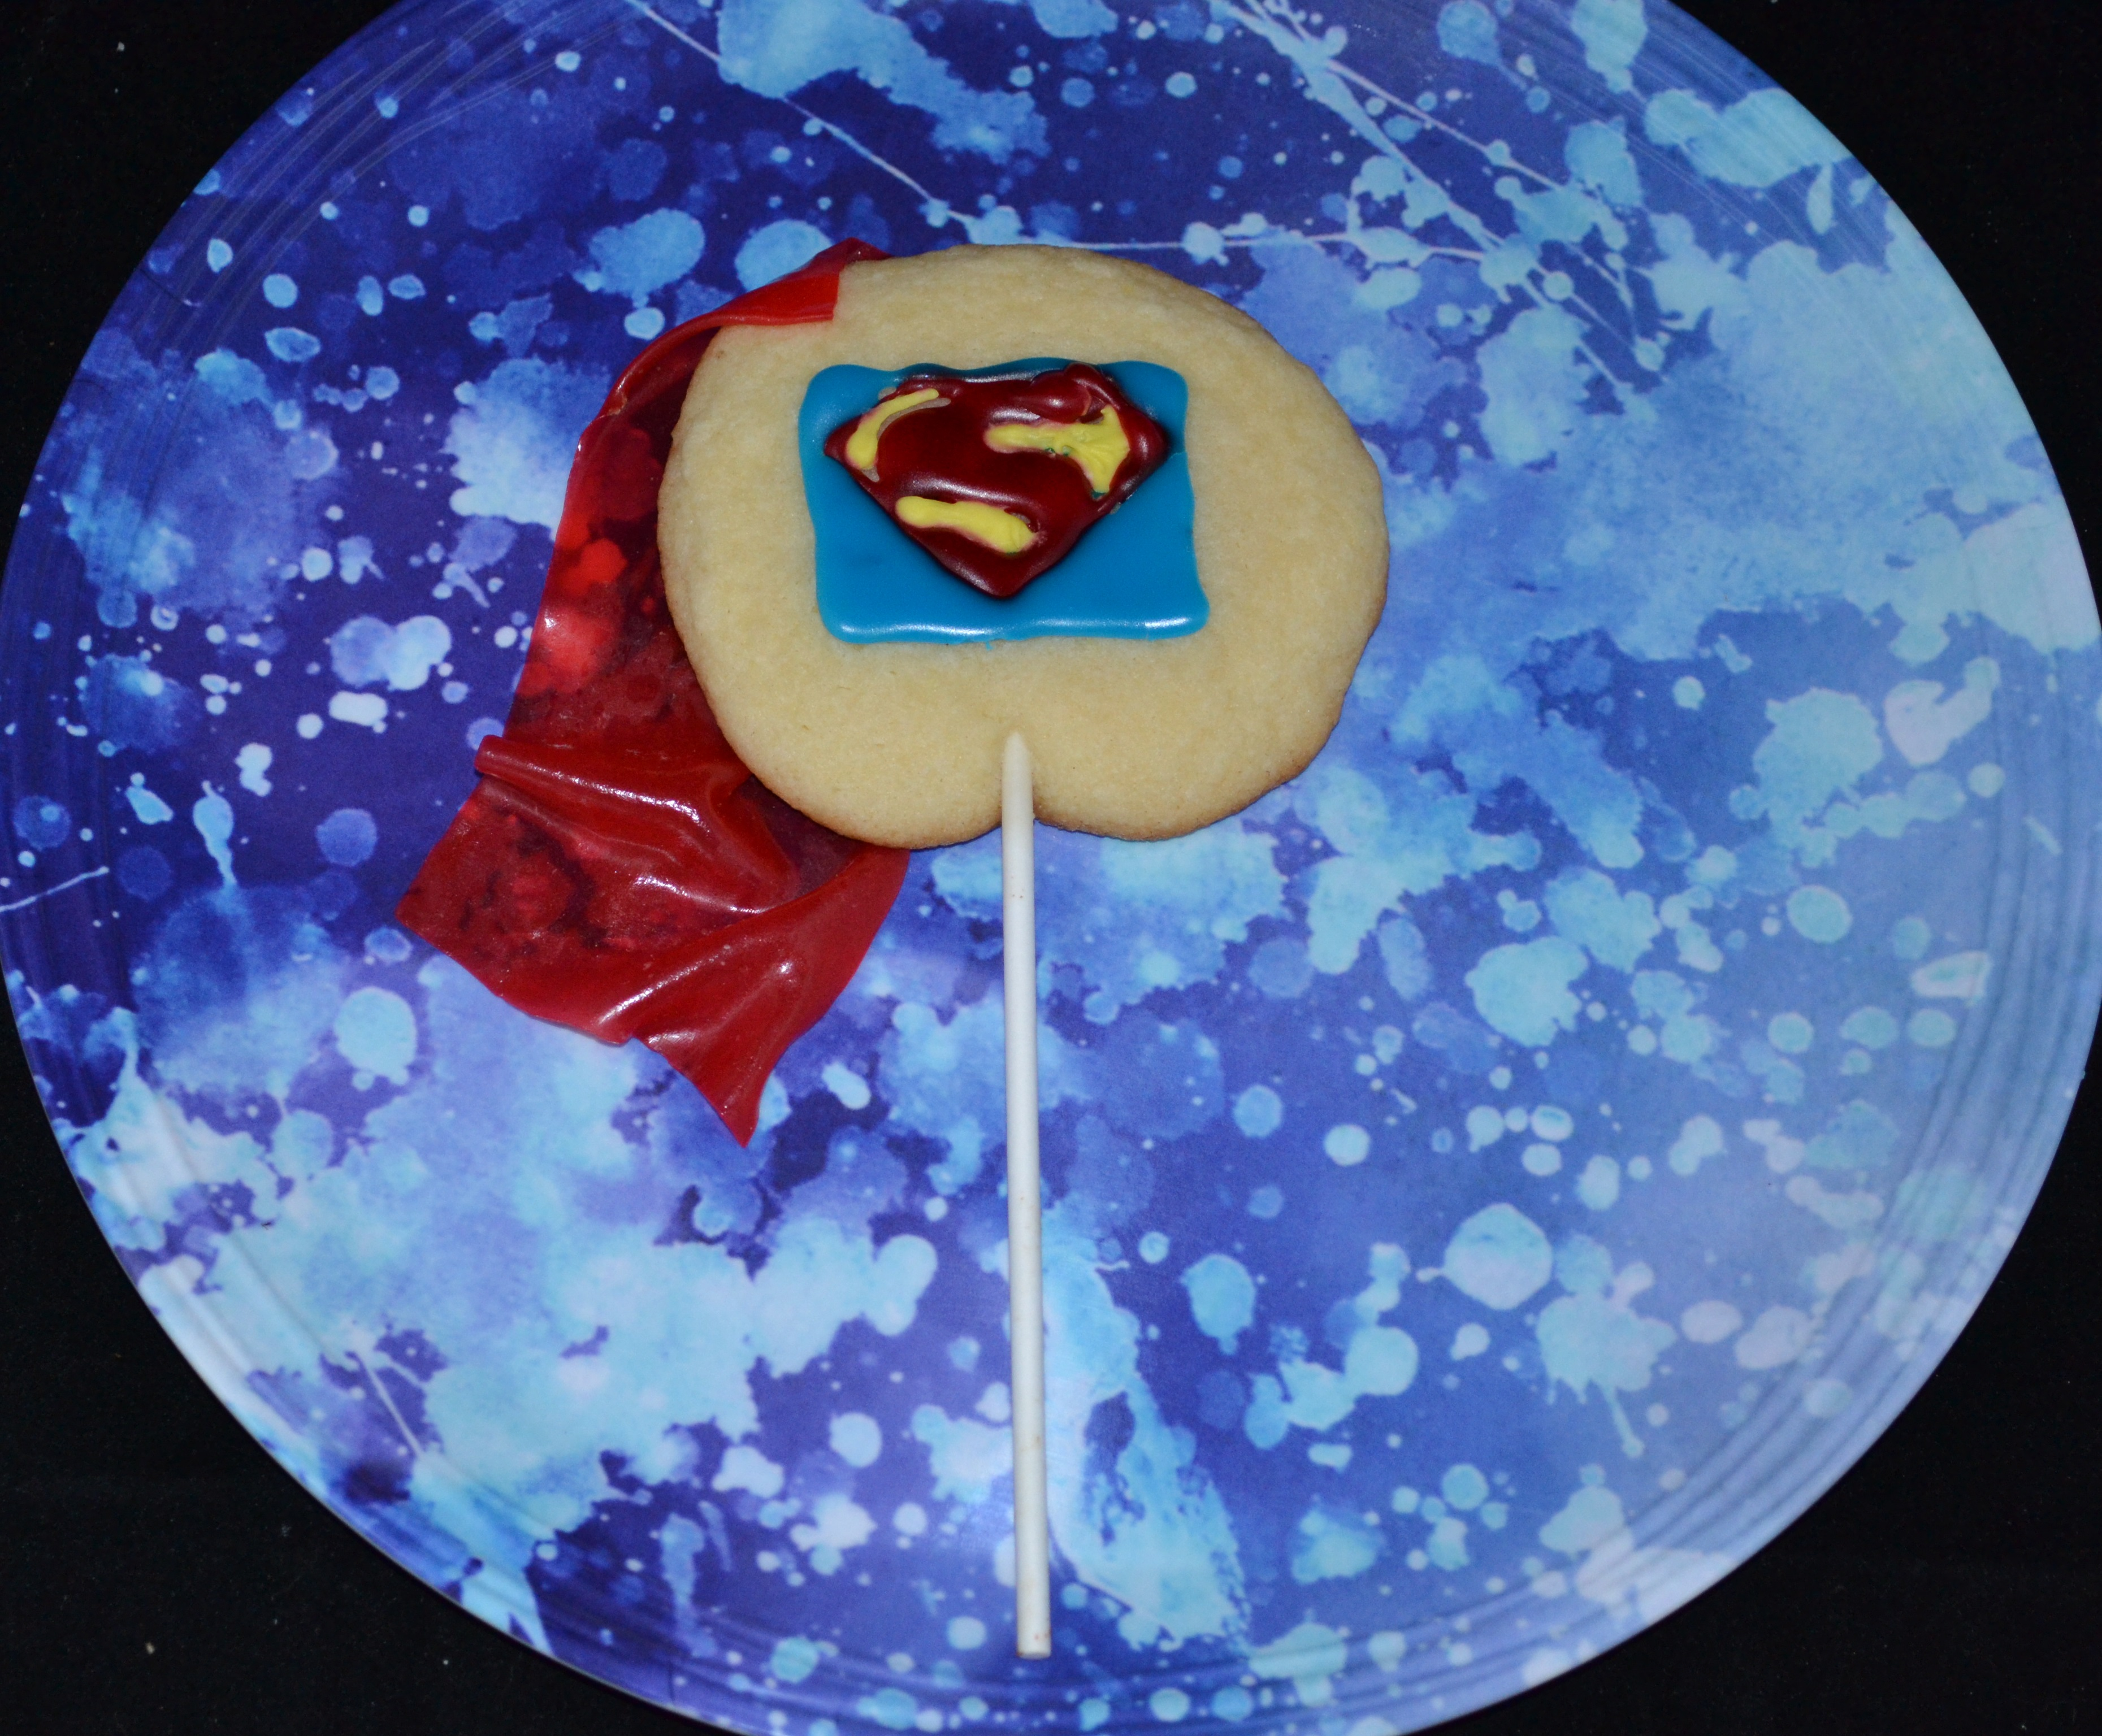 Superman cookie first image